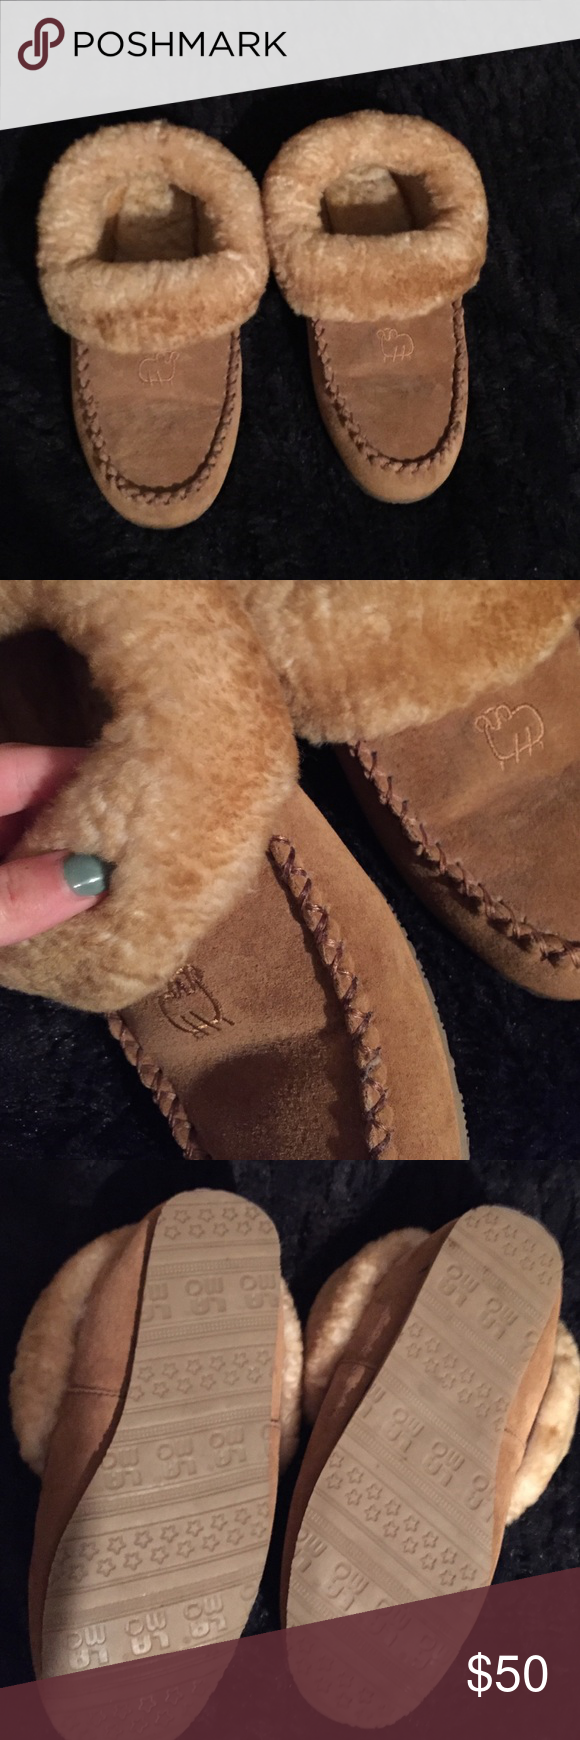 Slippers practically new Lama slippers, worn around the house once, very cute! Just don't wear slippers! Like ugh slipper! UGG Shoes Slippers